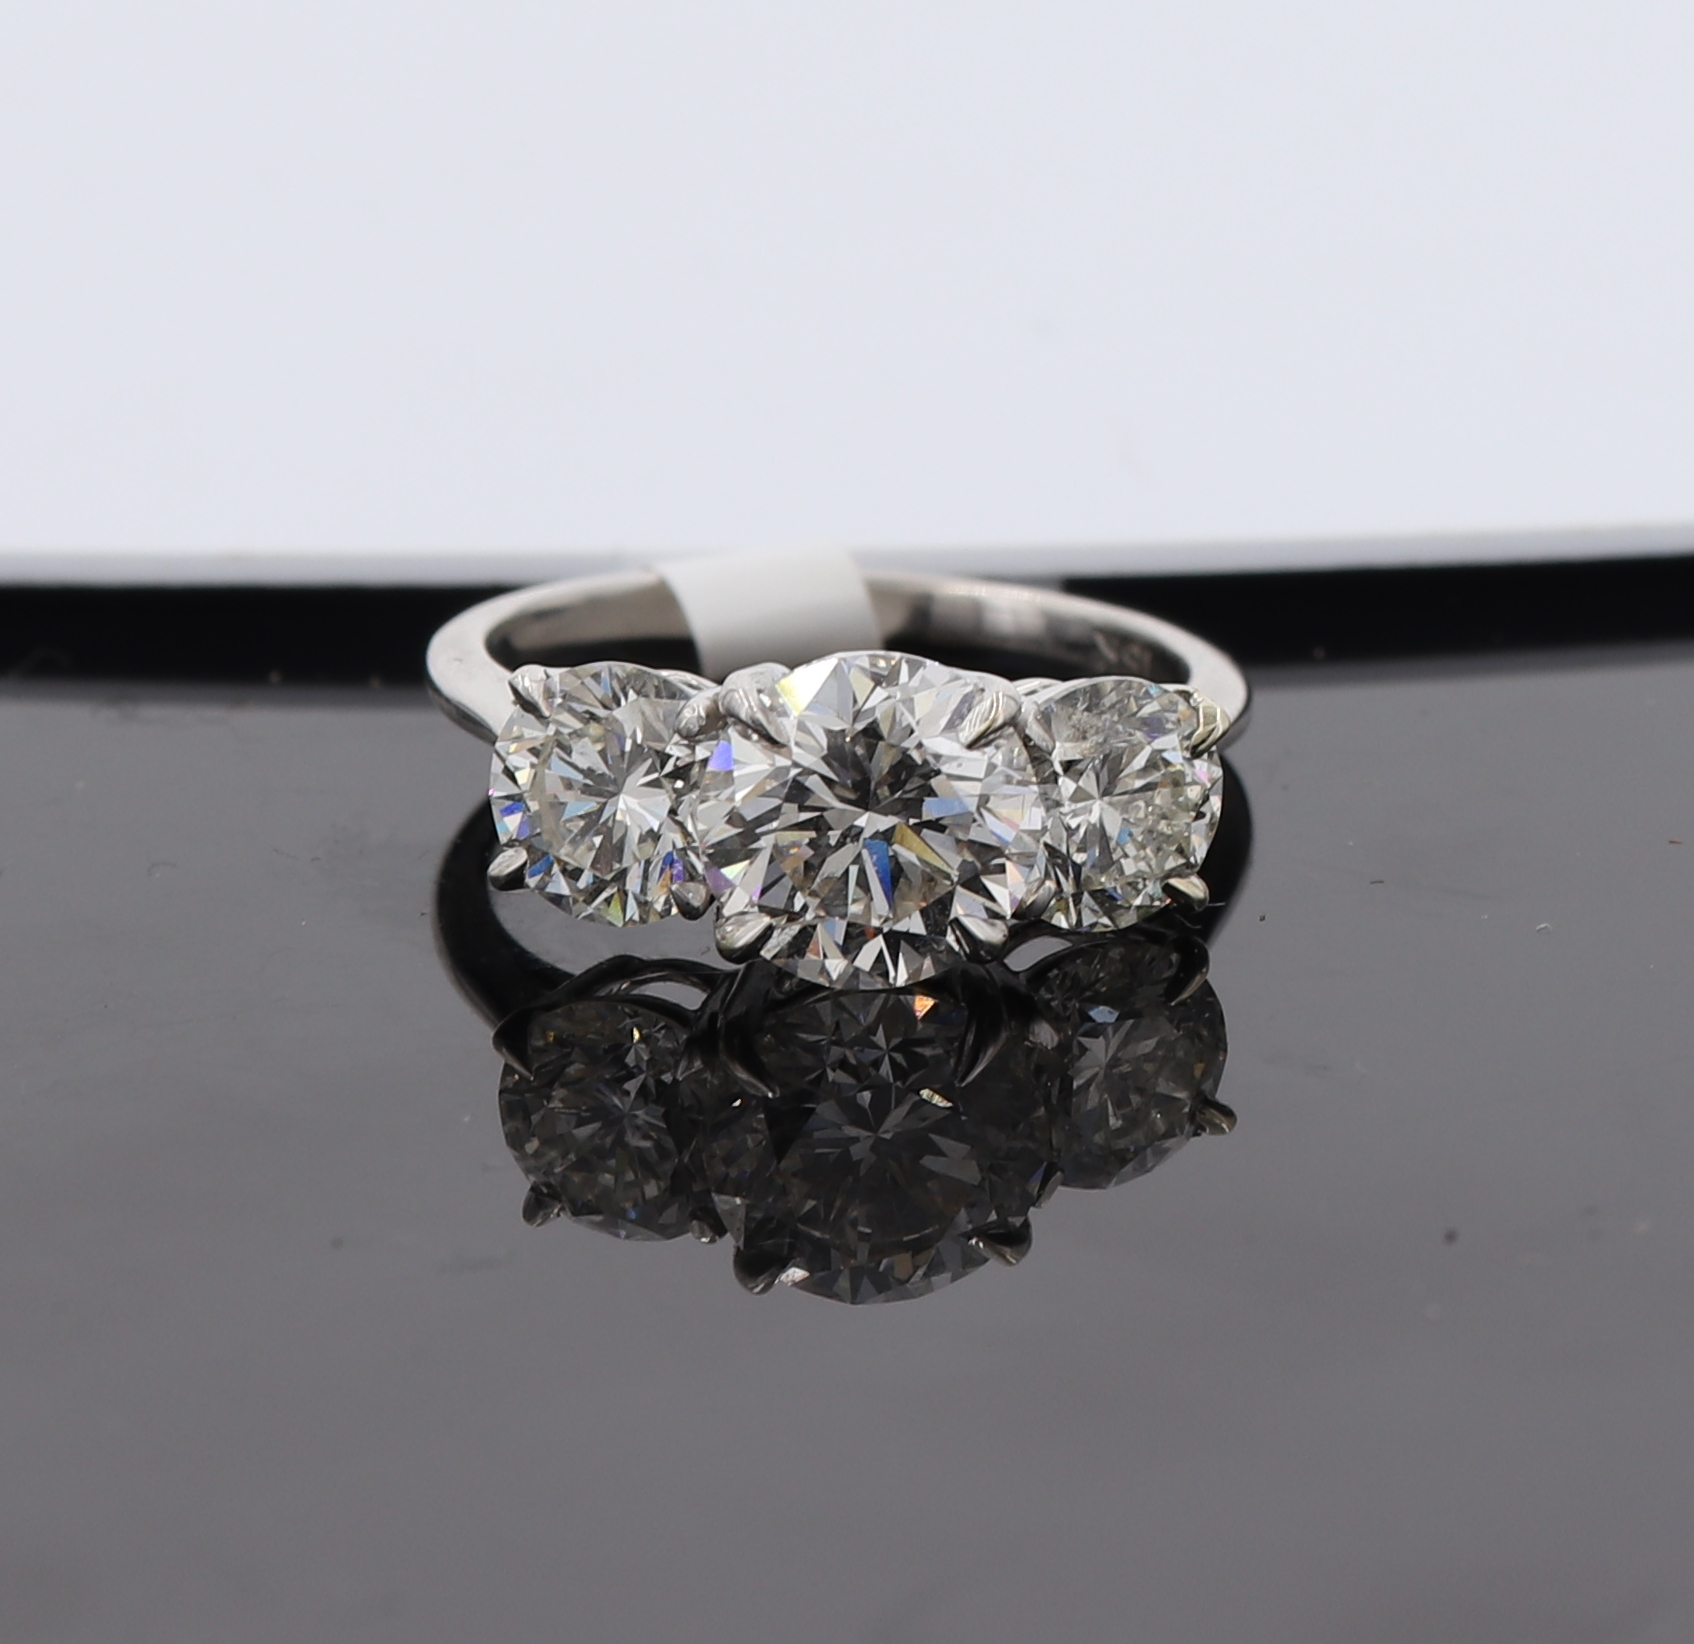 18K White Gold 3 Diamond Ring 1.64CT Center